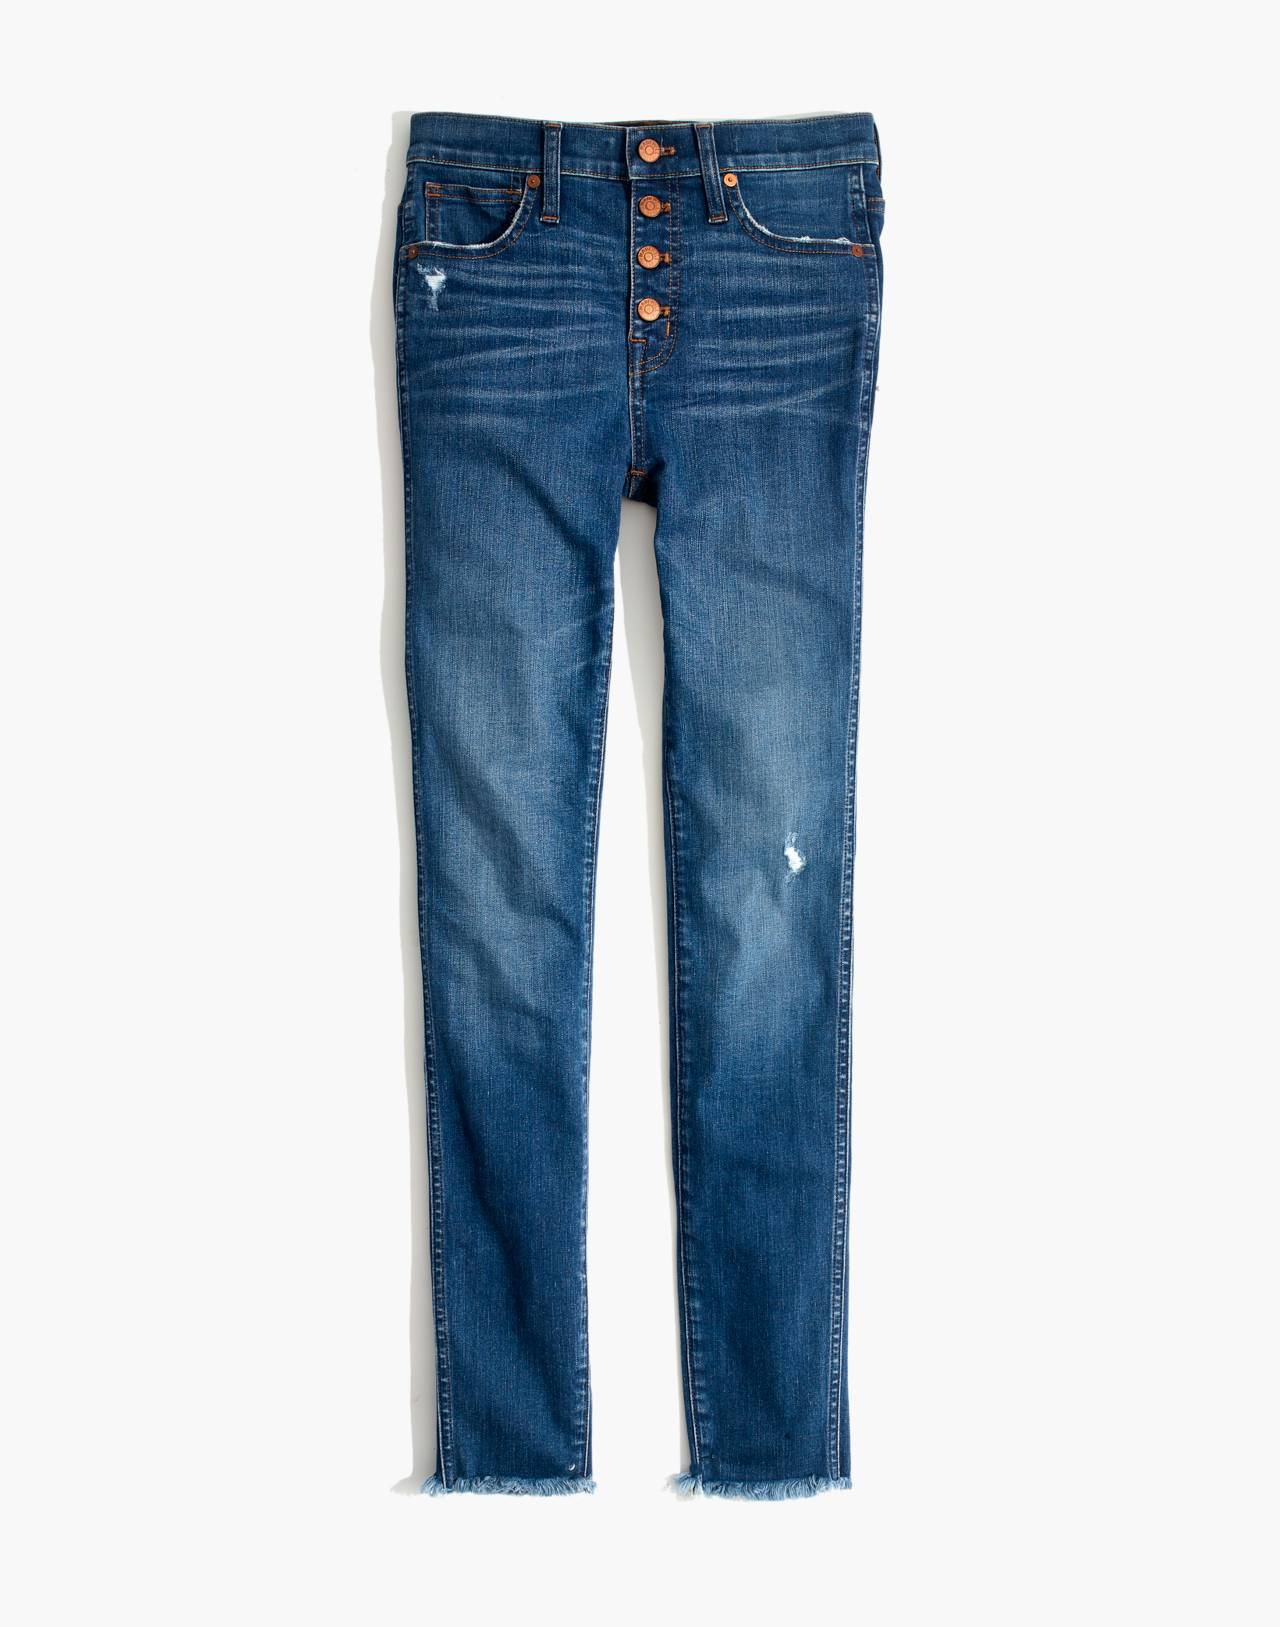 """Petite 10"""" High-Rise Skinny Jeans in Hanna Wash in hanna wash image 4"""